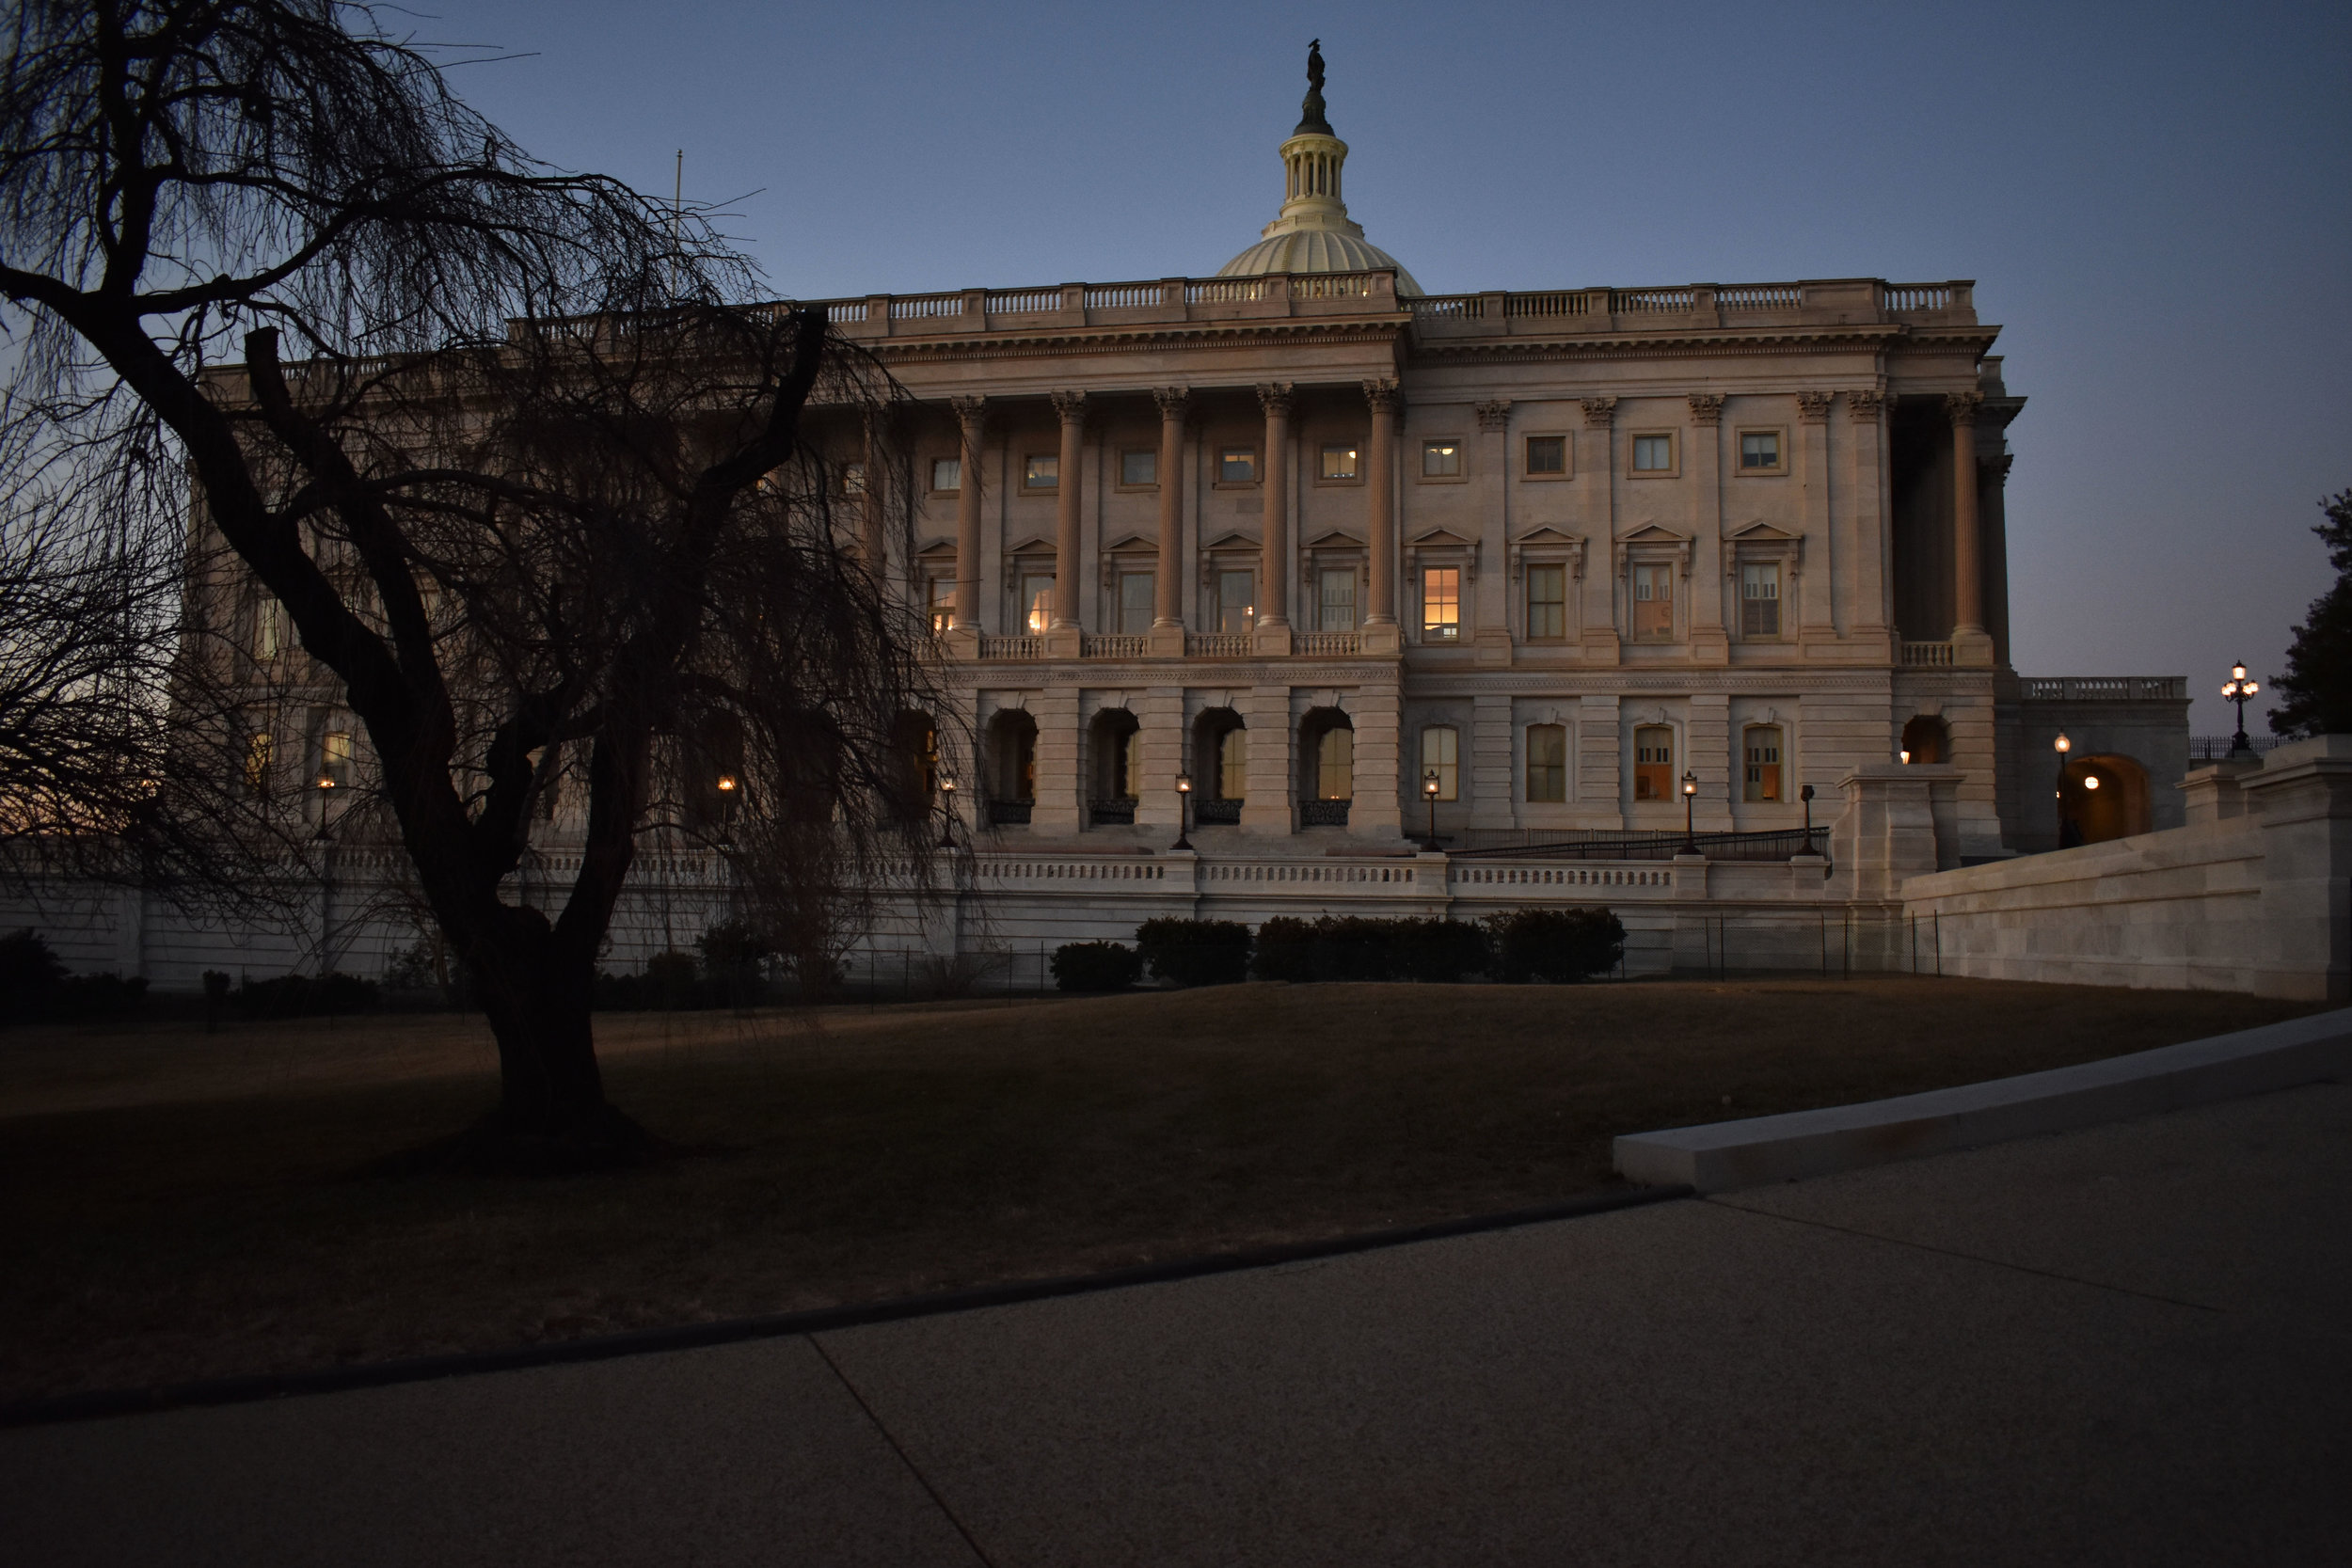 The South Side of the U.S. Capitol in Washington is pictured at dusk, Thursday, Jan. 25, 2018. (Lindsey Leake/American University)